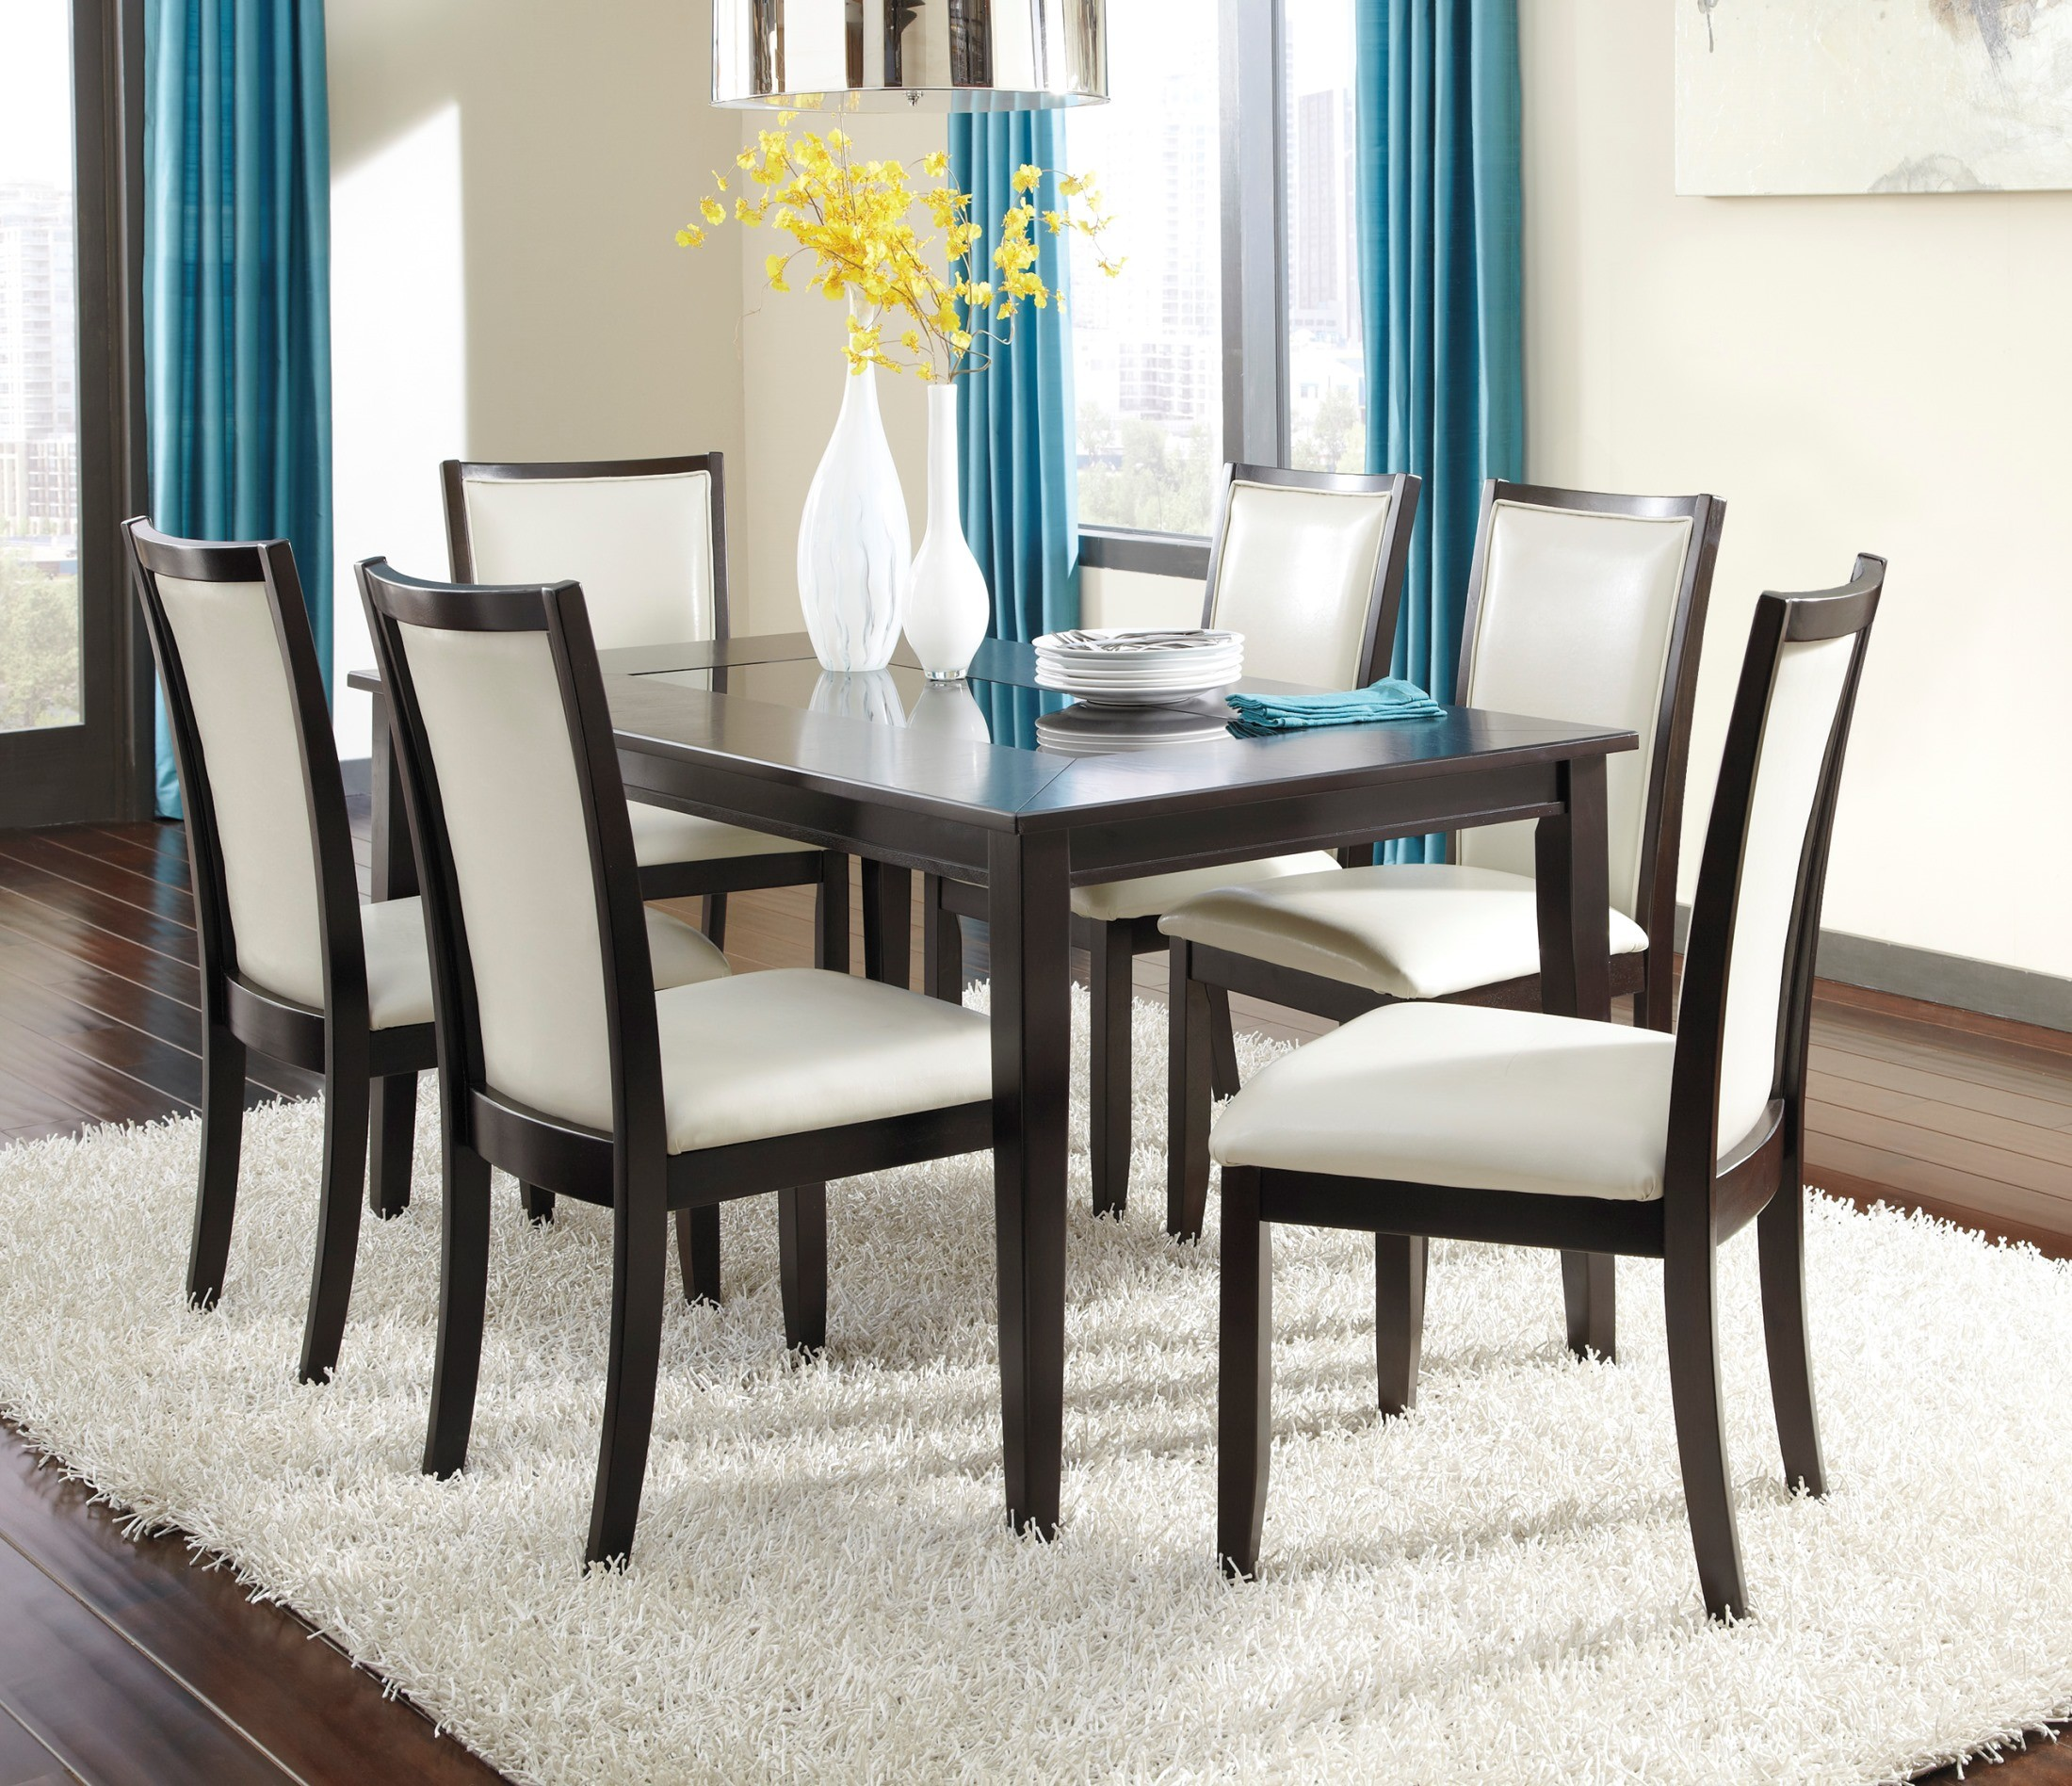 Emejing 4 Piece Dining Room Sets Photos Ltrevents